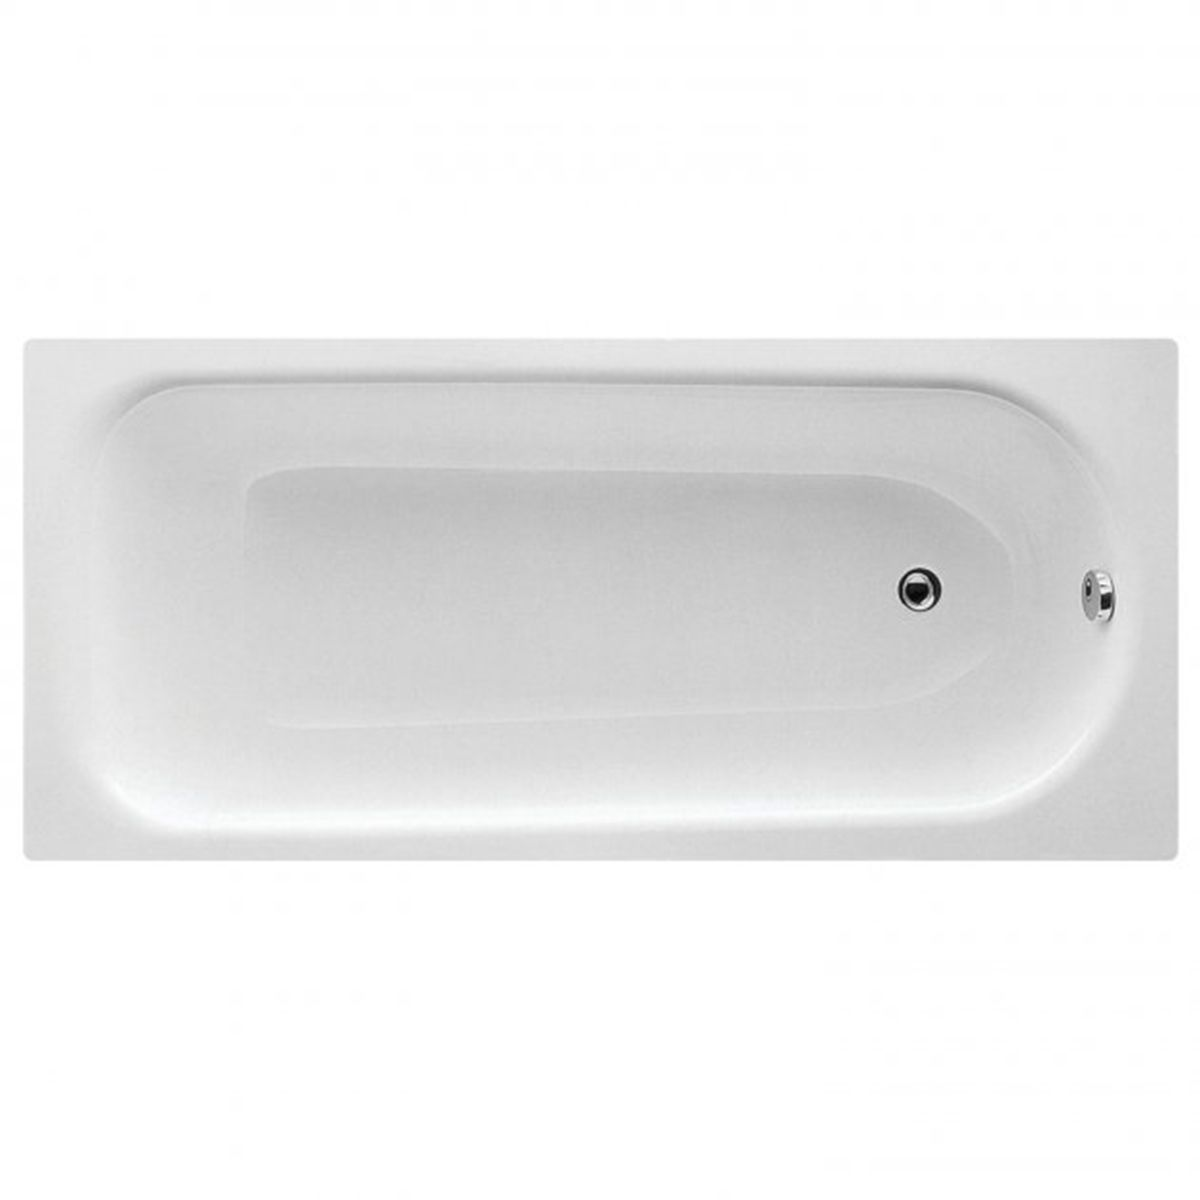 Bathrooms To Love Rectangular 2 Tap Hole Single Ended Steel Bath 1700mm x 700mm